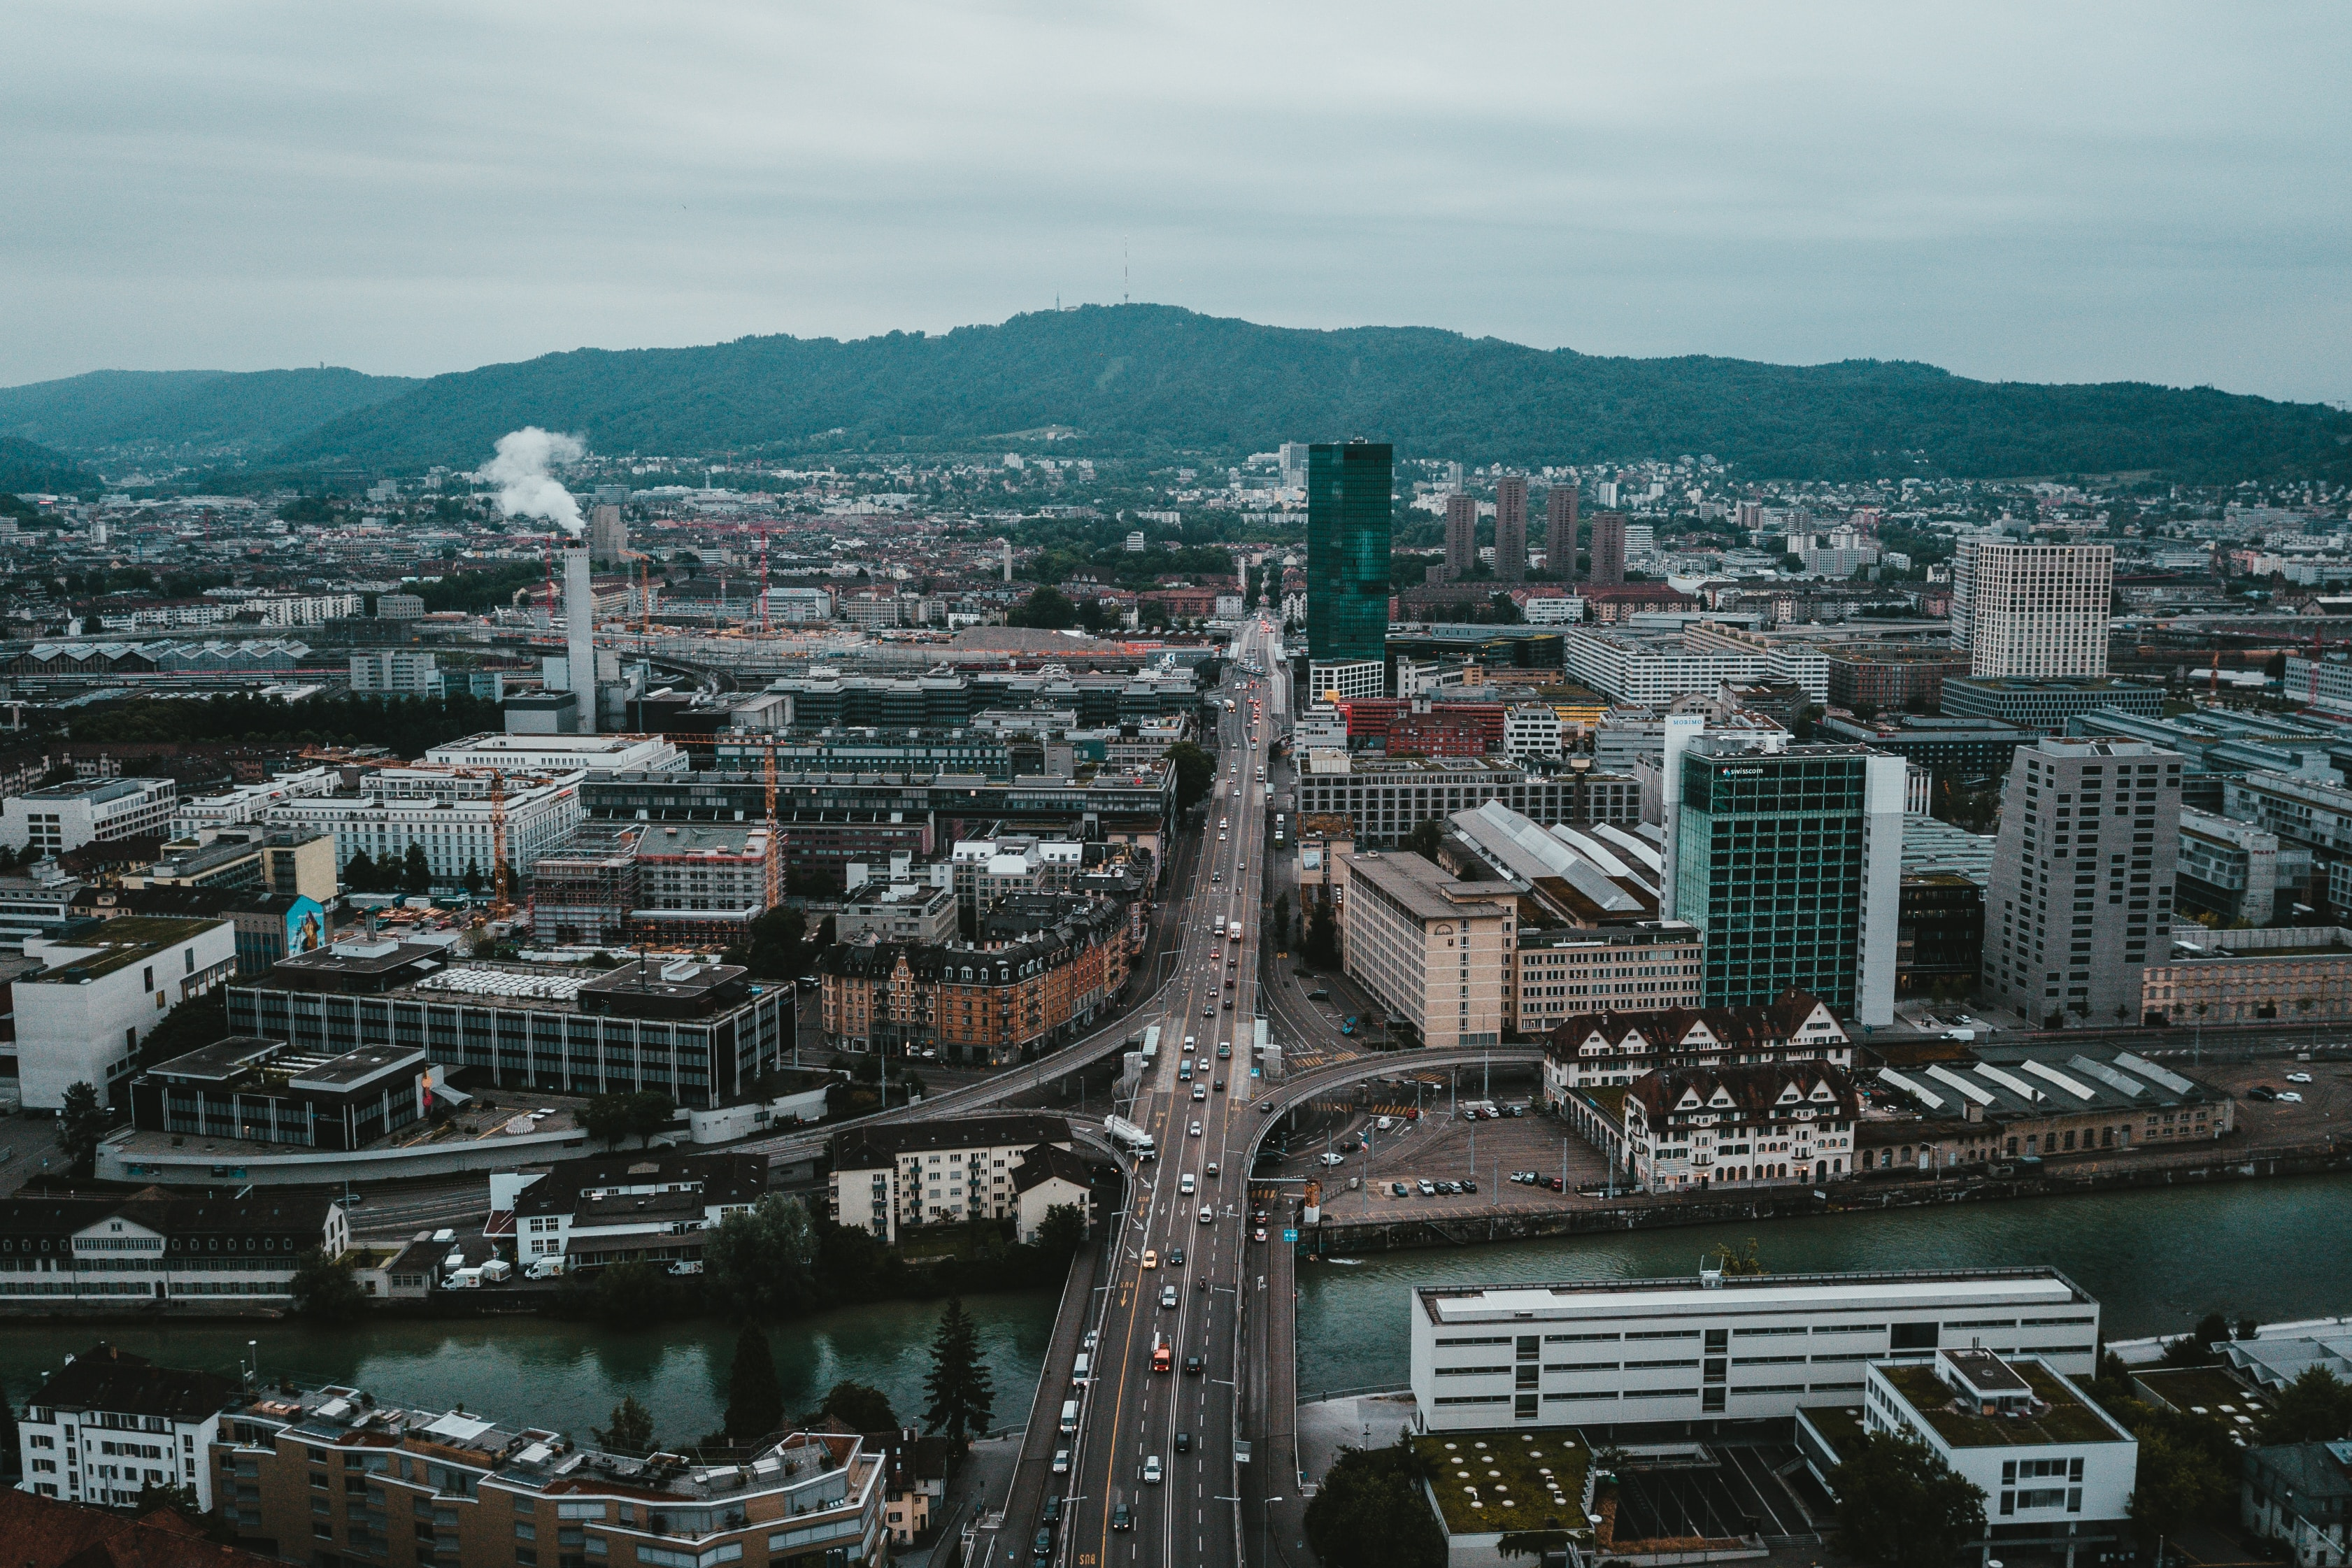 Zürich: Photo by 🇨🇭 Claudio Schwarz on Unsplash